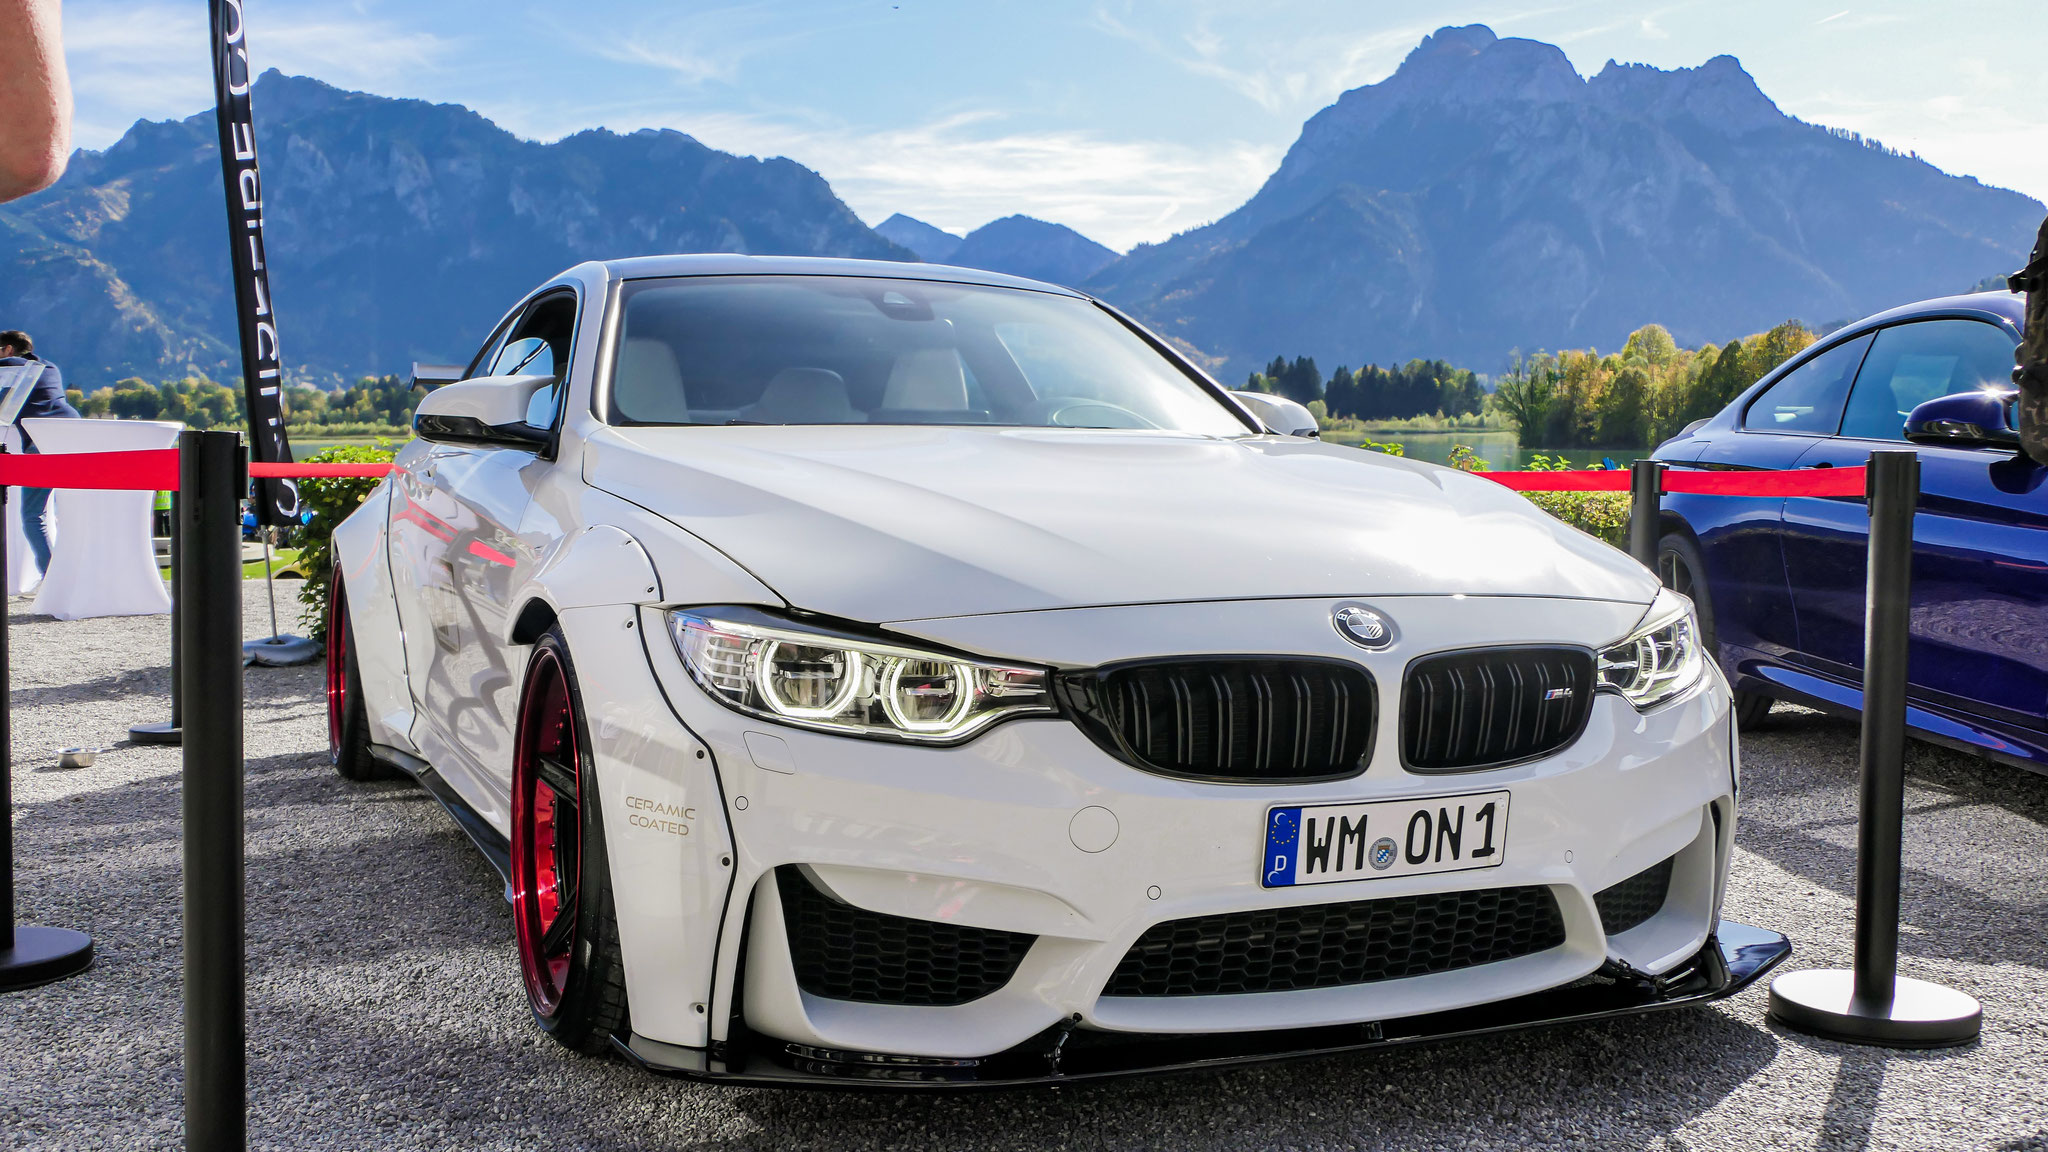 BMW M4 Liberty Walk - WM-ON-1